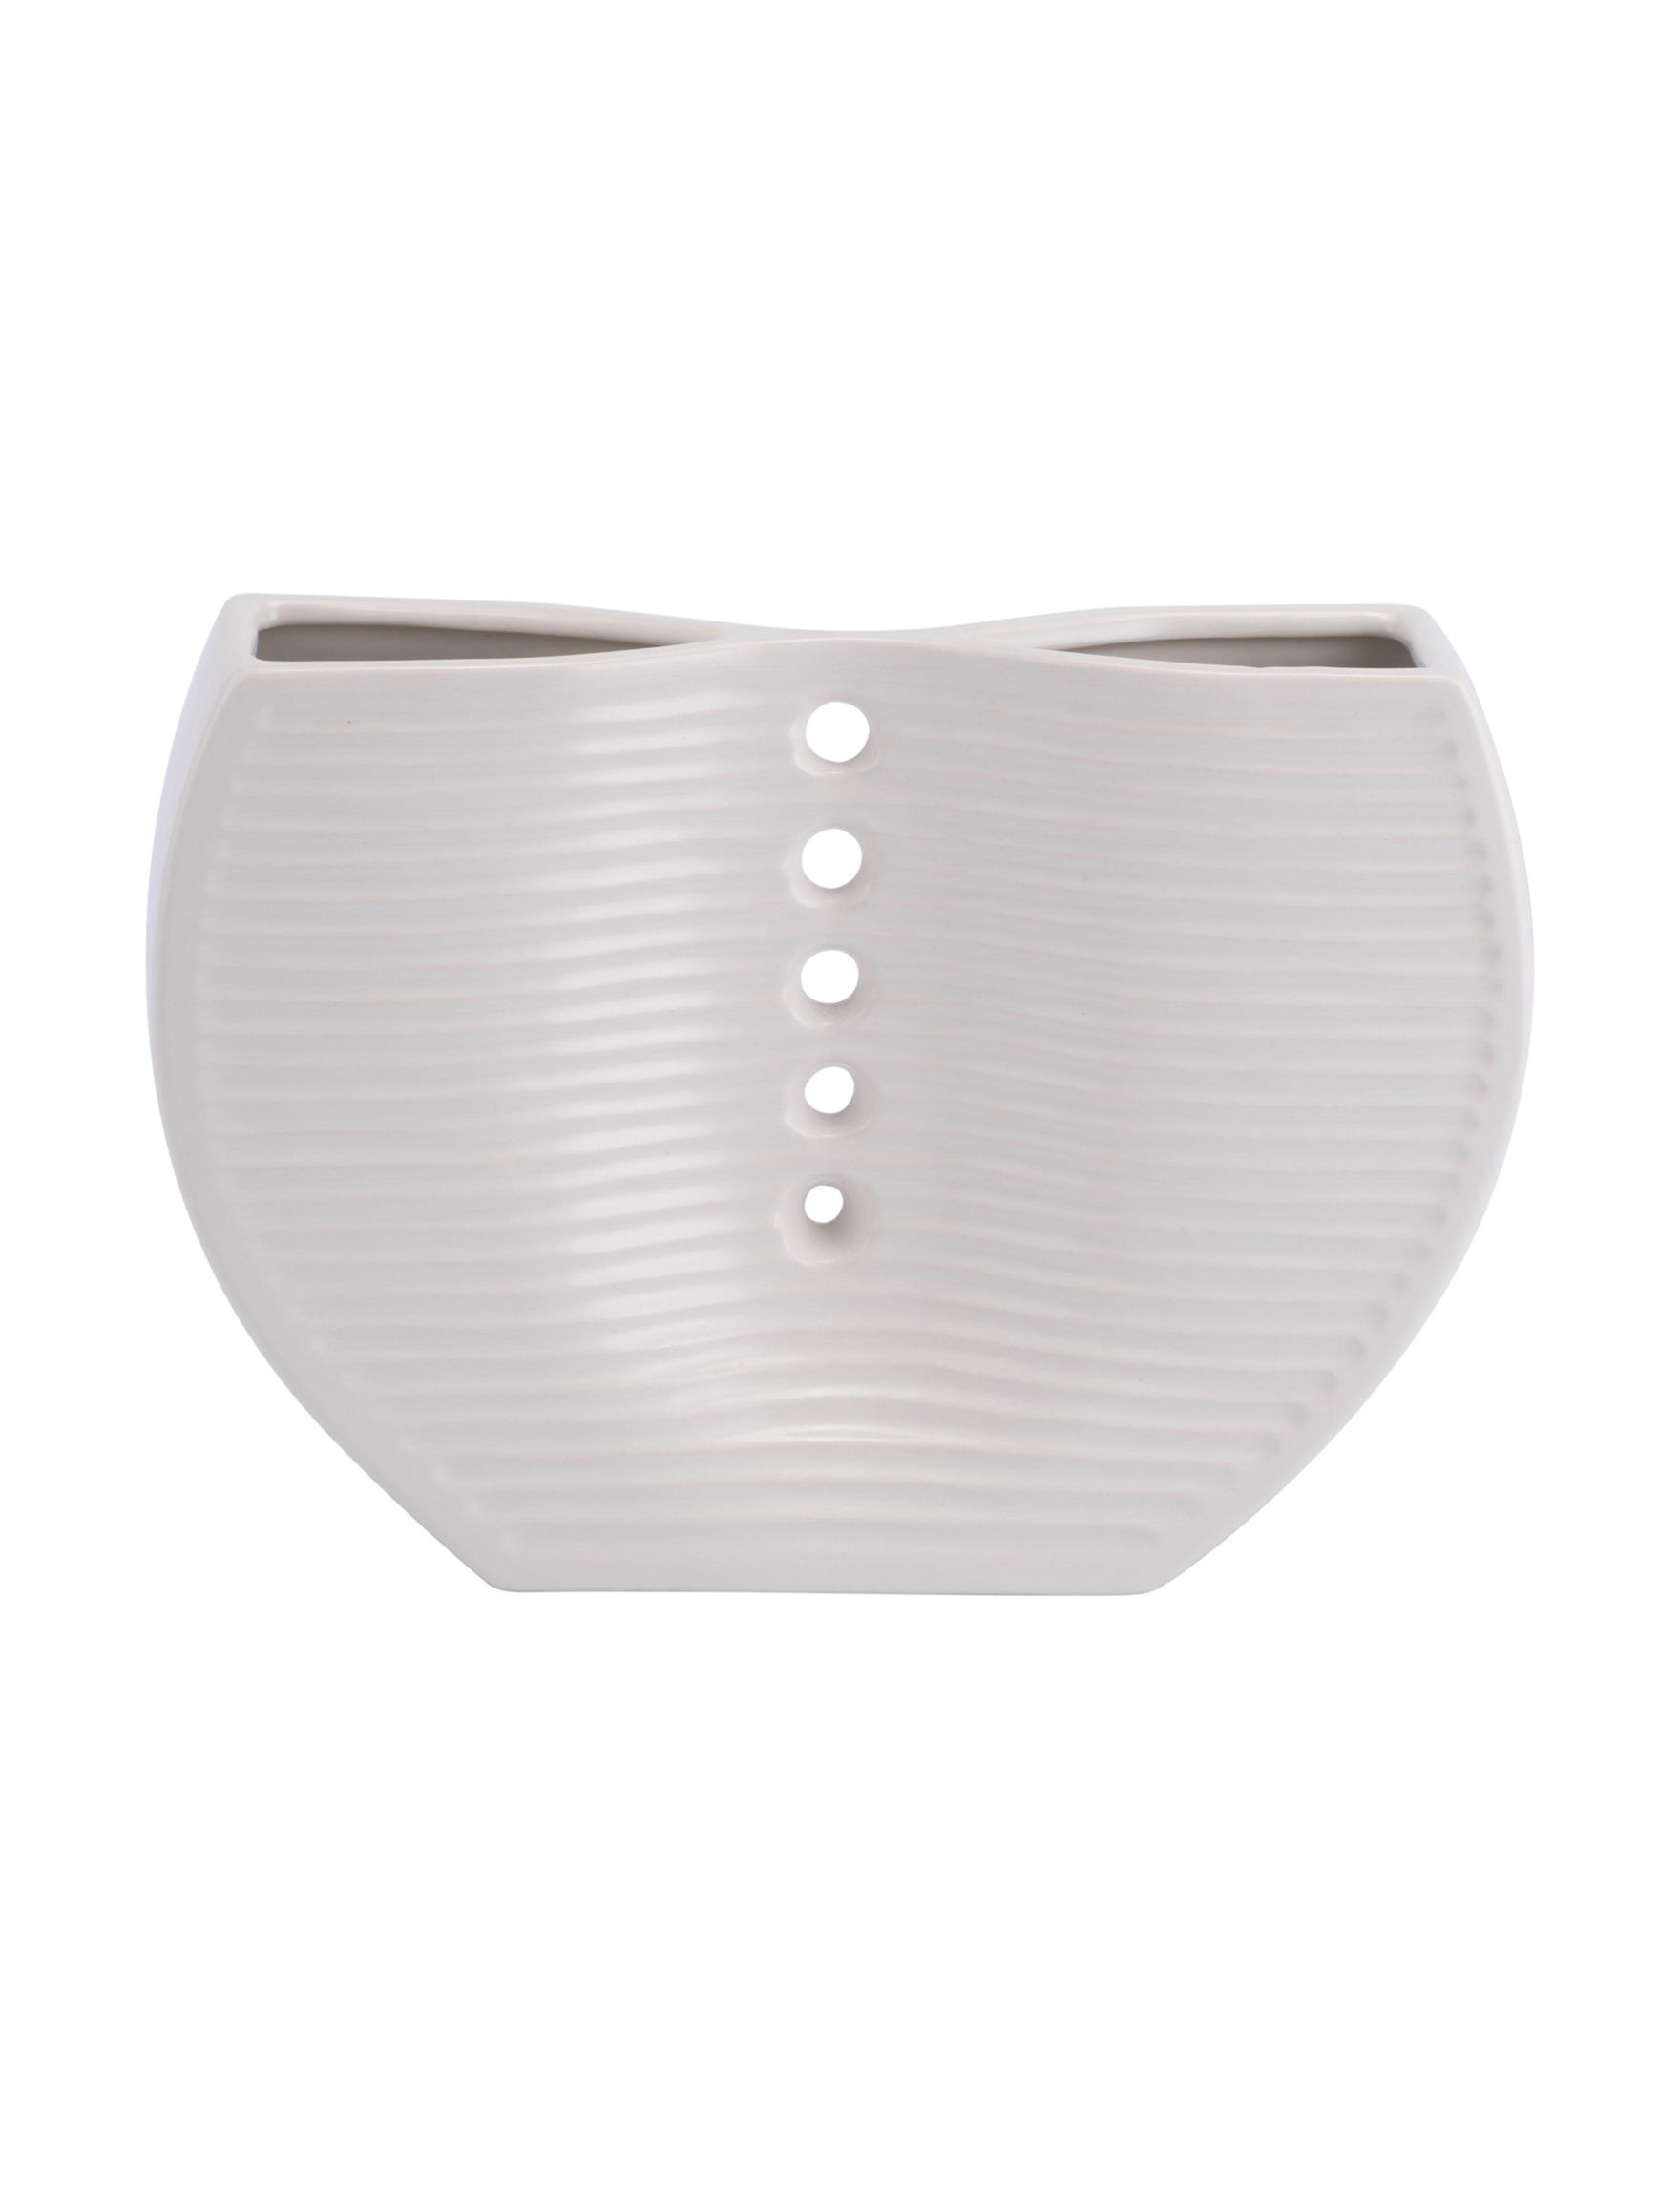 Zuo Modern White Vases & Decorative Bowls Home Accents